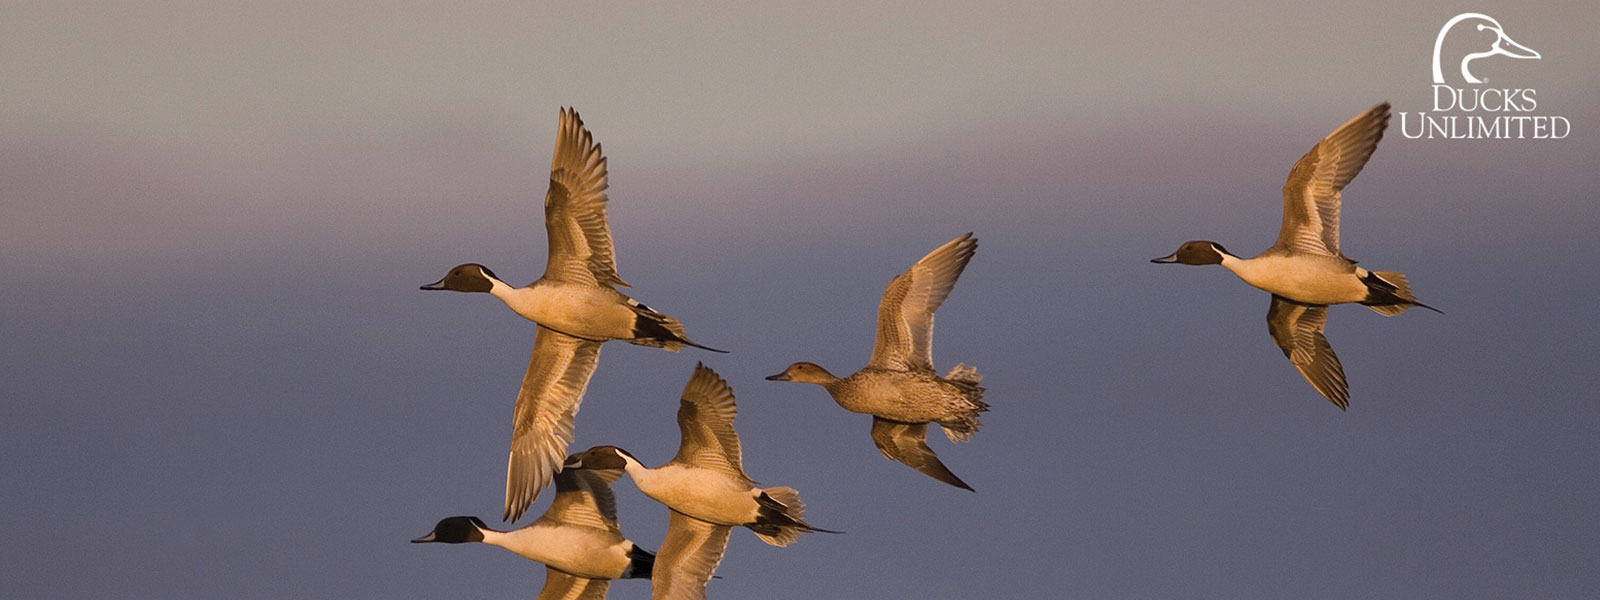 Flint Hills Resources Donates $65,000 To Protect Waterfowl Habitat